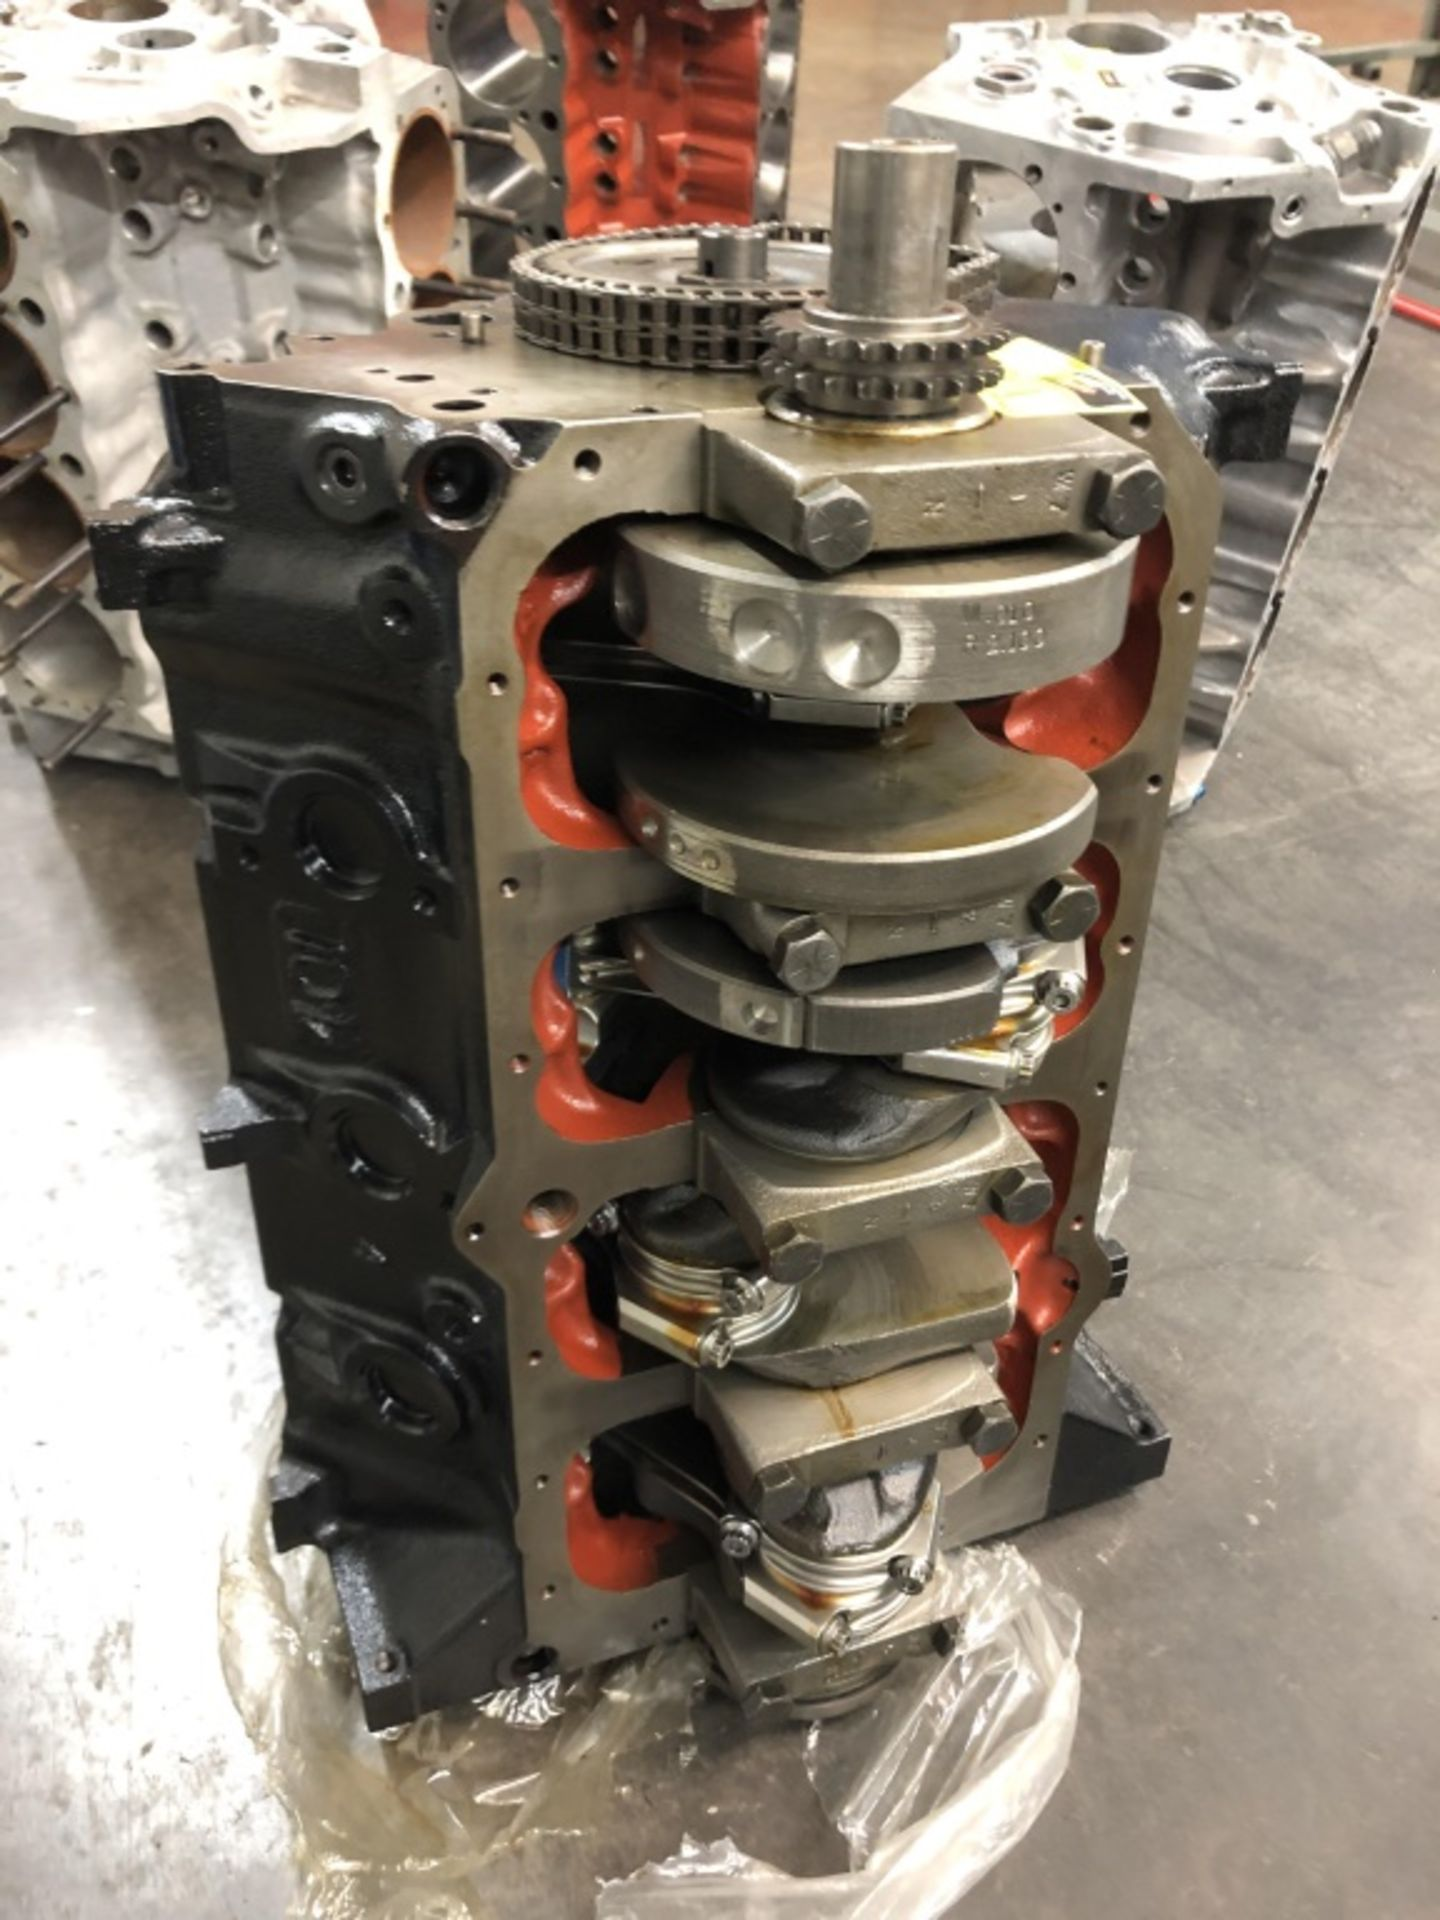 Lot 1649 - Used Race Engine, Unfinished project.